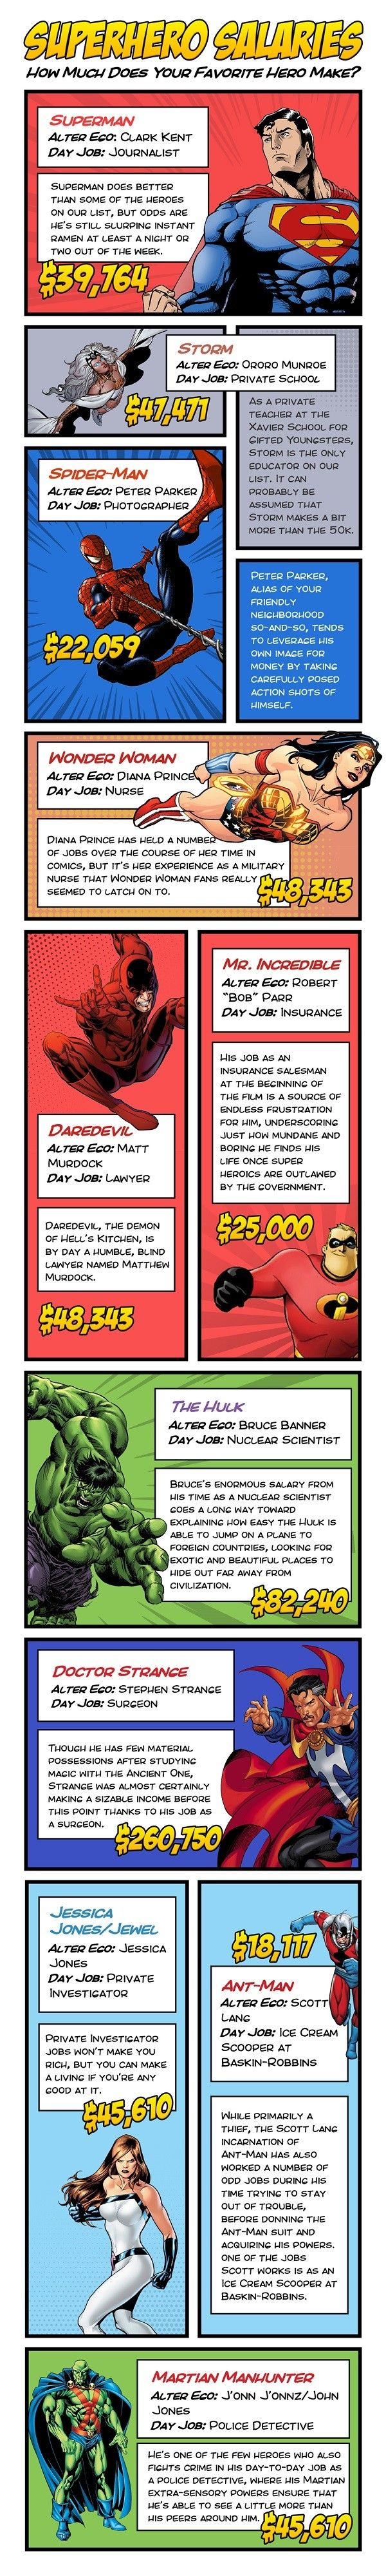 Infographic reveals which superheroes have the best and worst day jobs